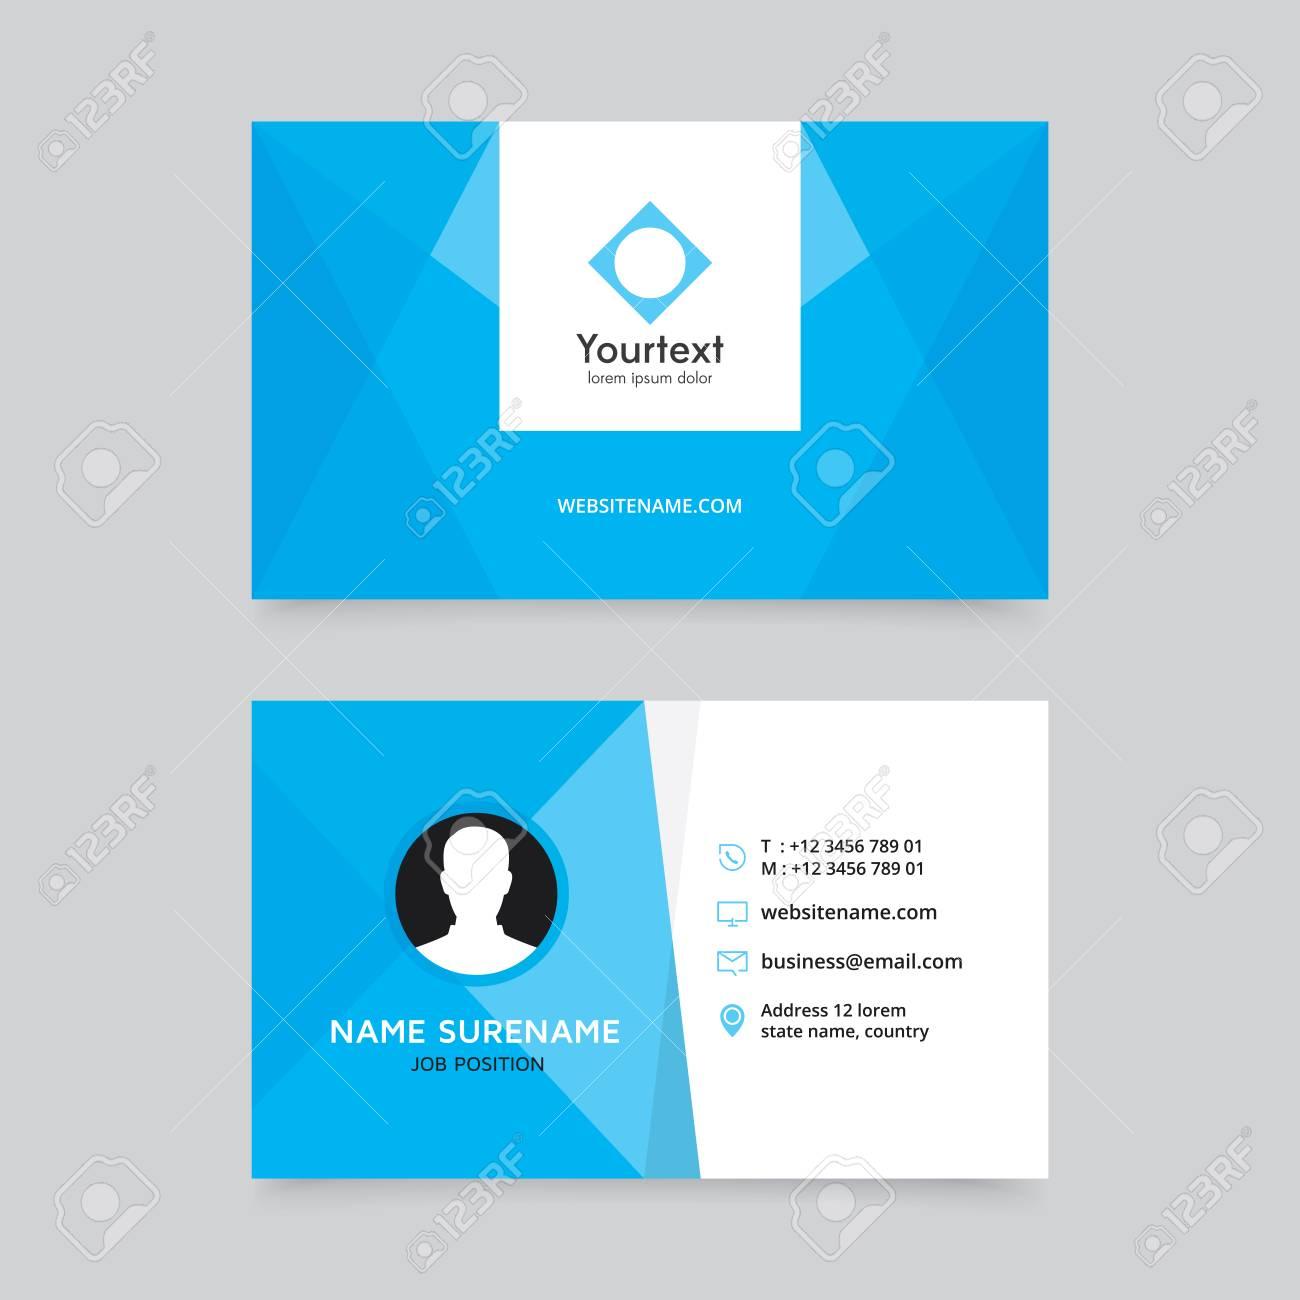 Elegant clean blue business card design vector modern creative elegant clean blue business card design vector modern creative and clean business card template wajeb Choice Image